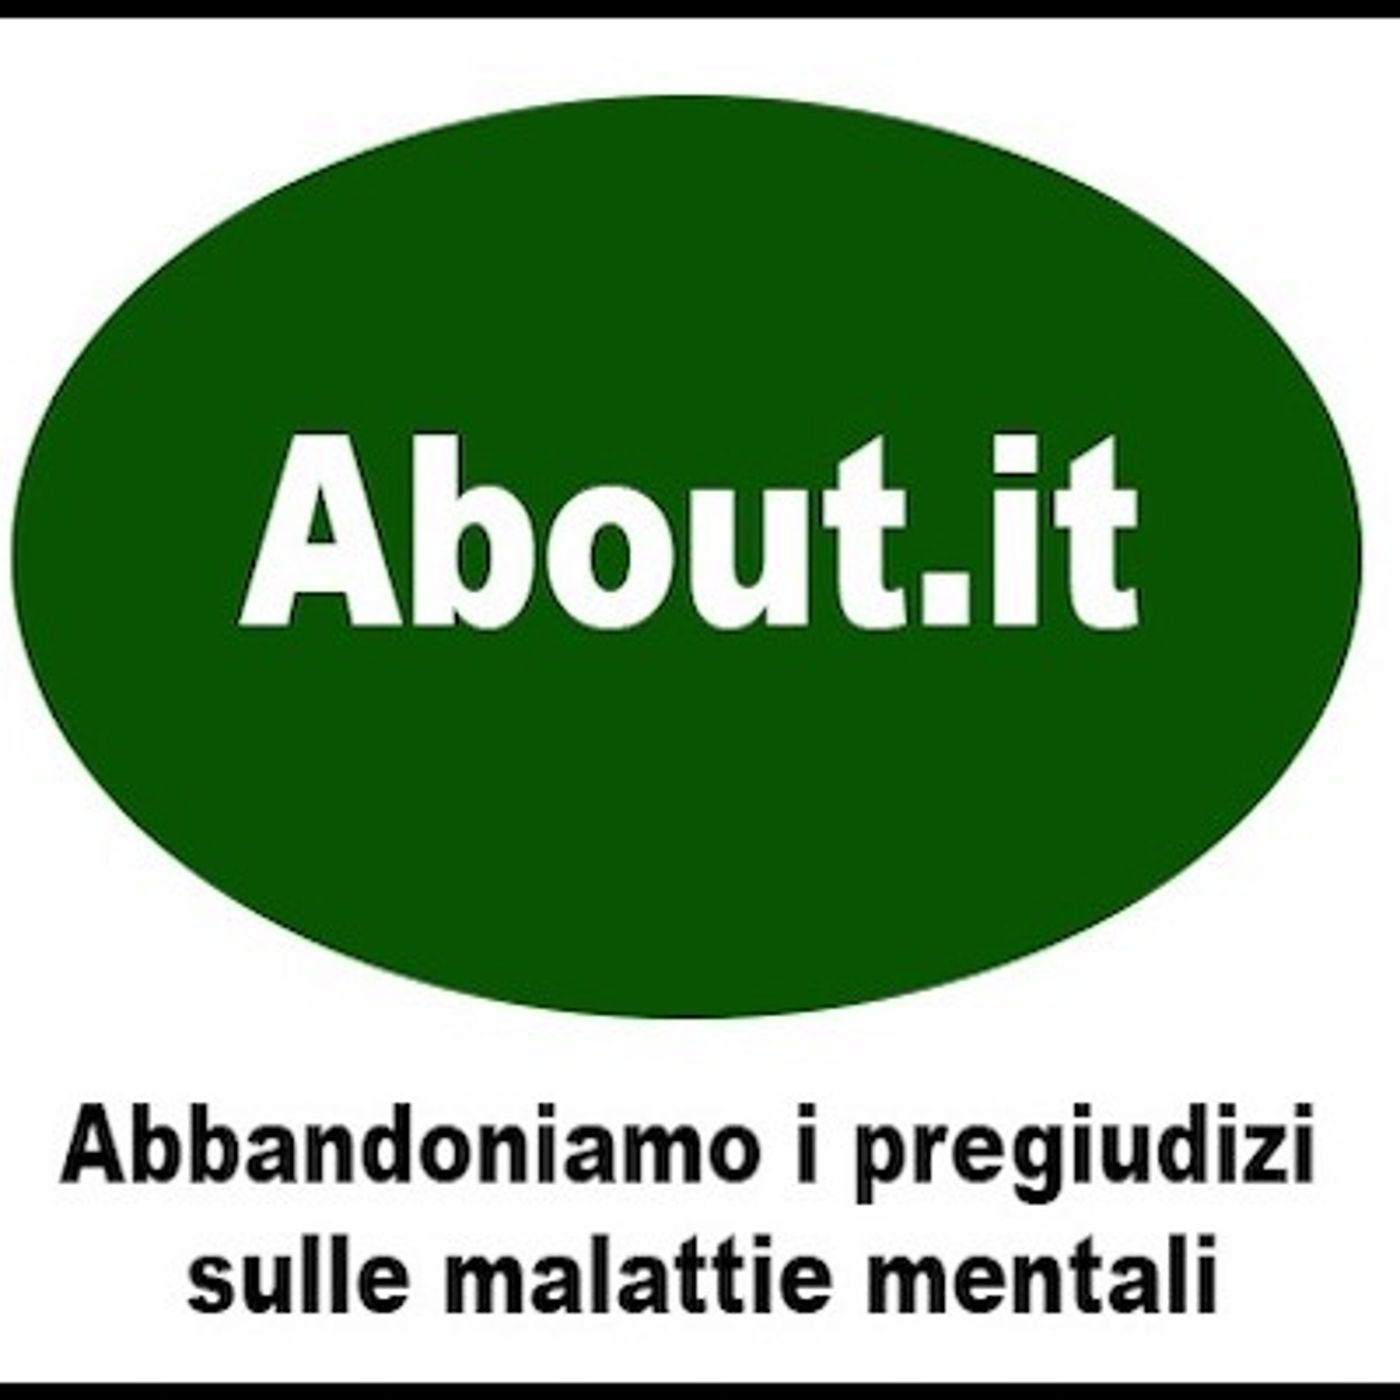 Disturbi alimentari - About.It - s01e03